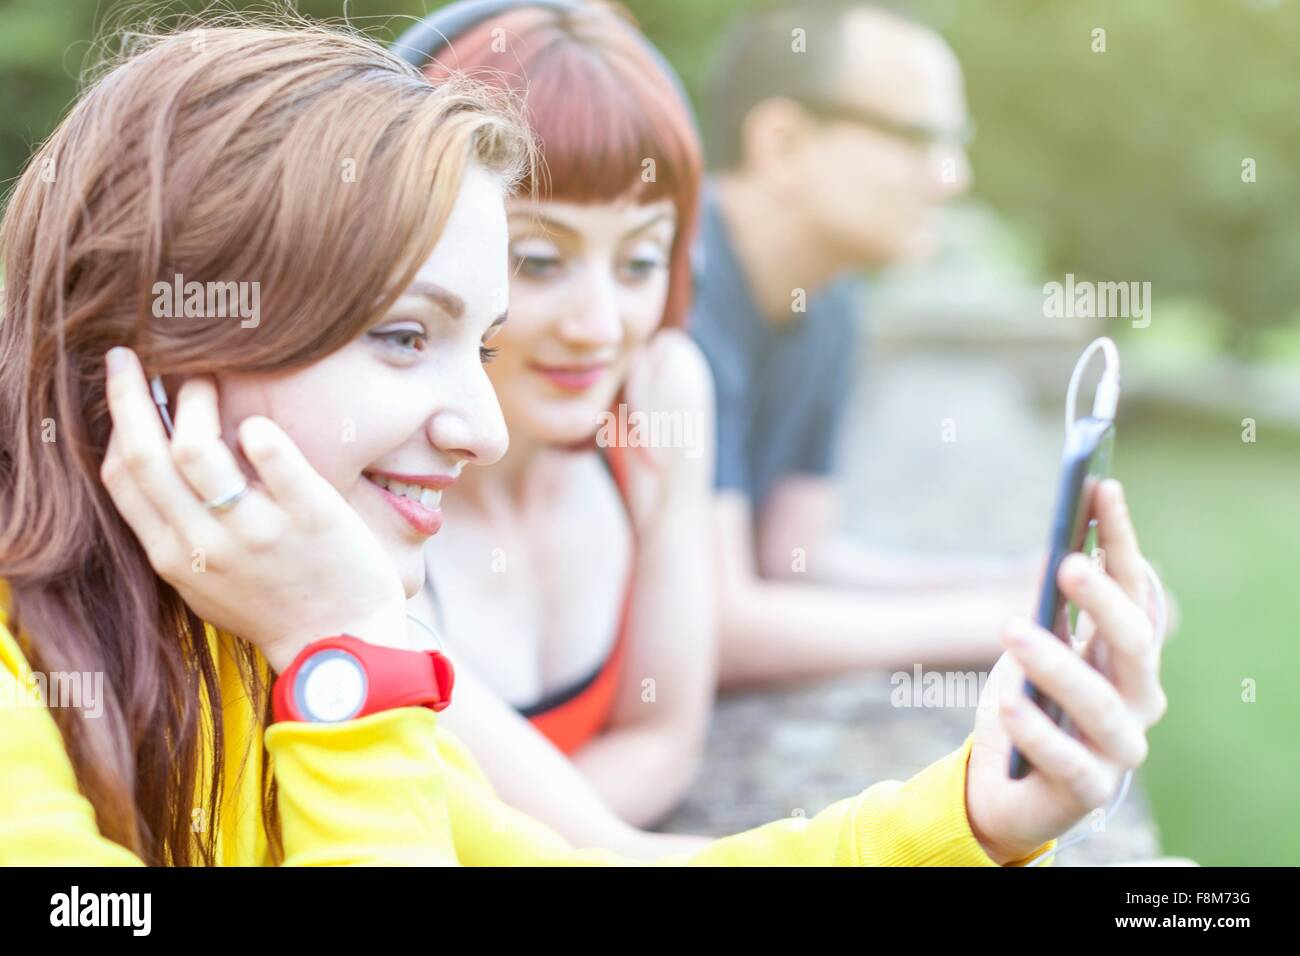 Young women using smartphone, leaning on low wall - Stock Image